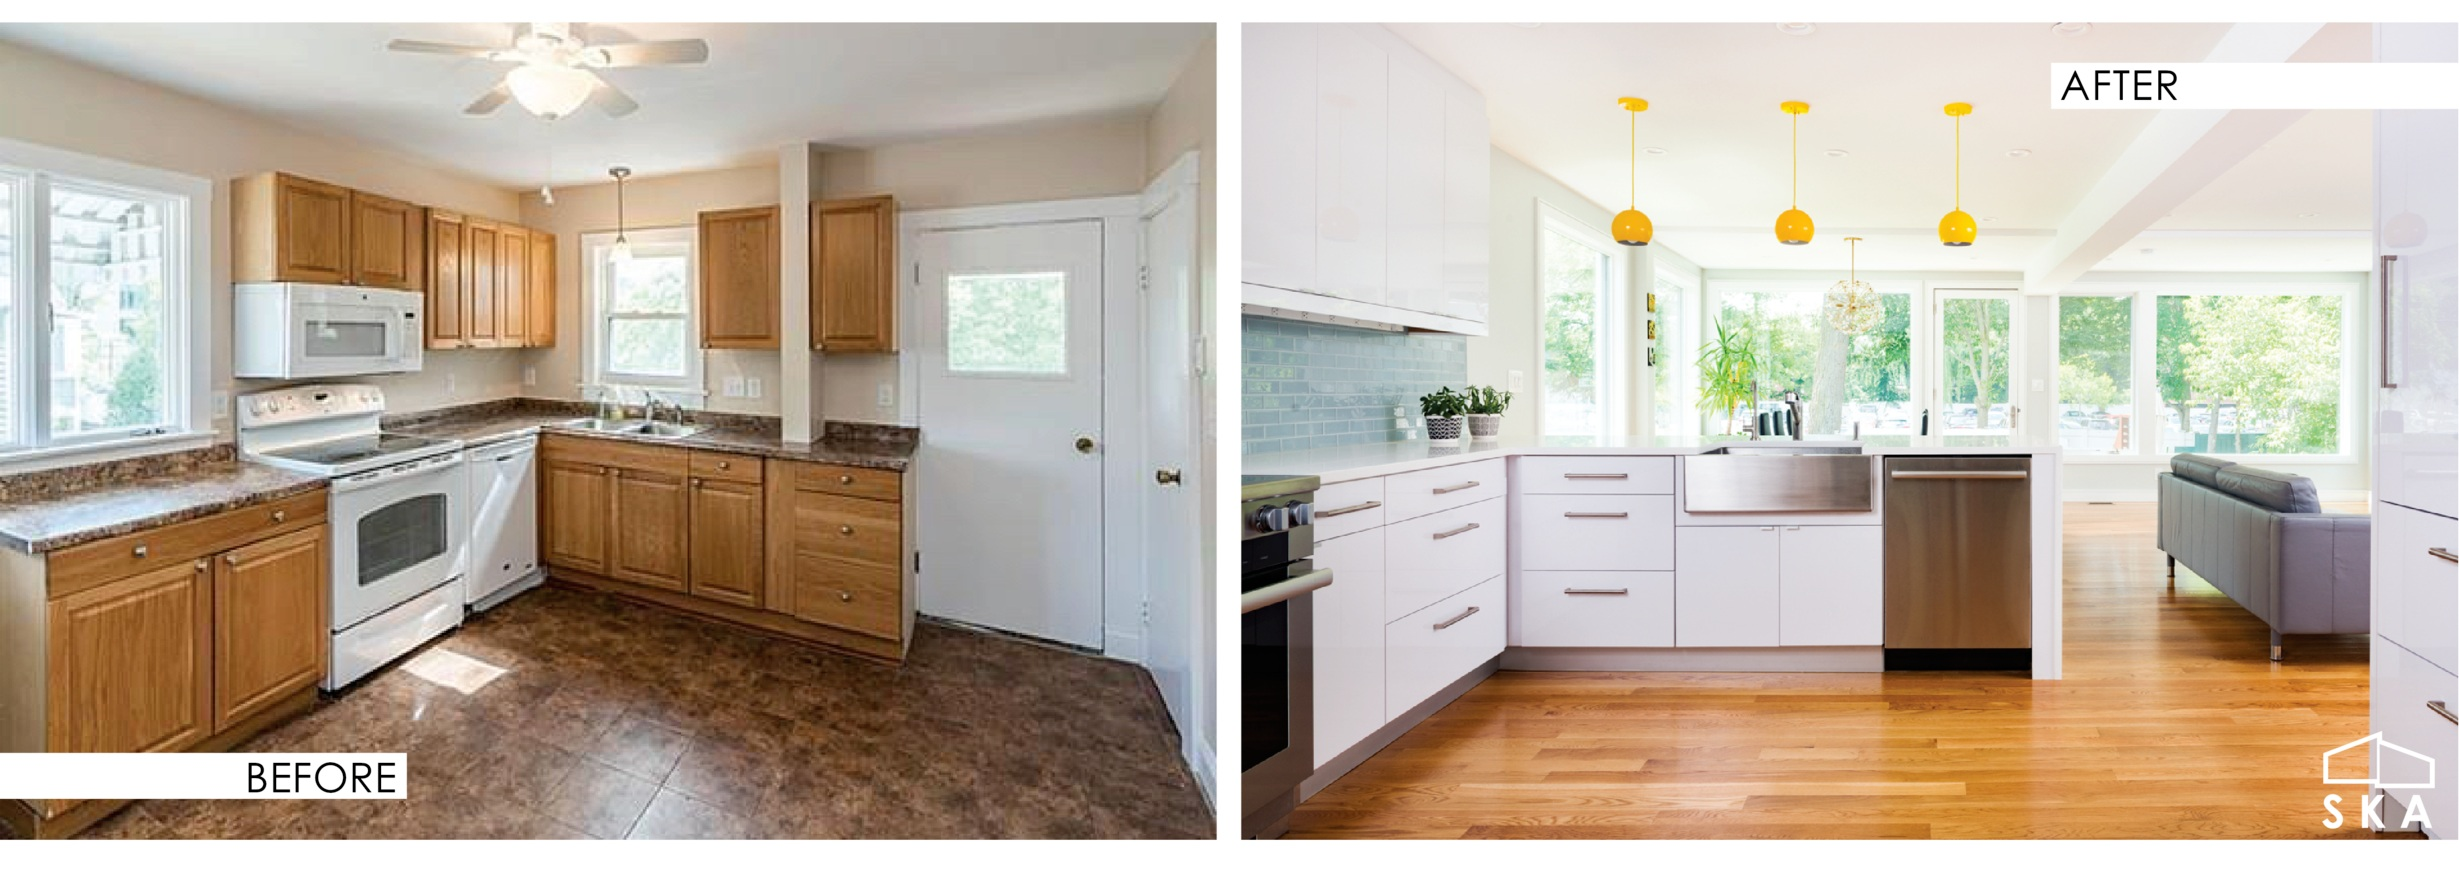 Before+After_46_Aberdeen_kitchen.png